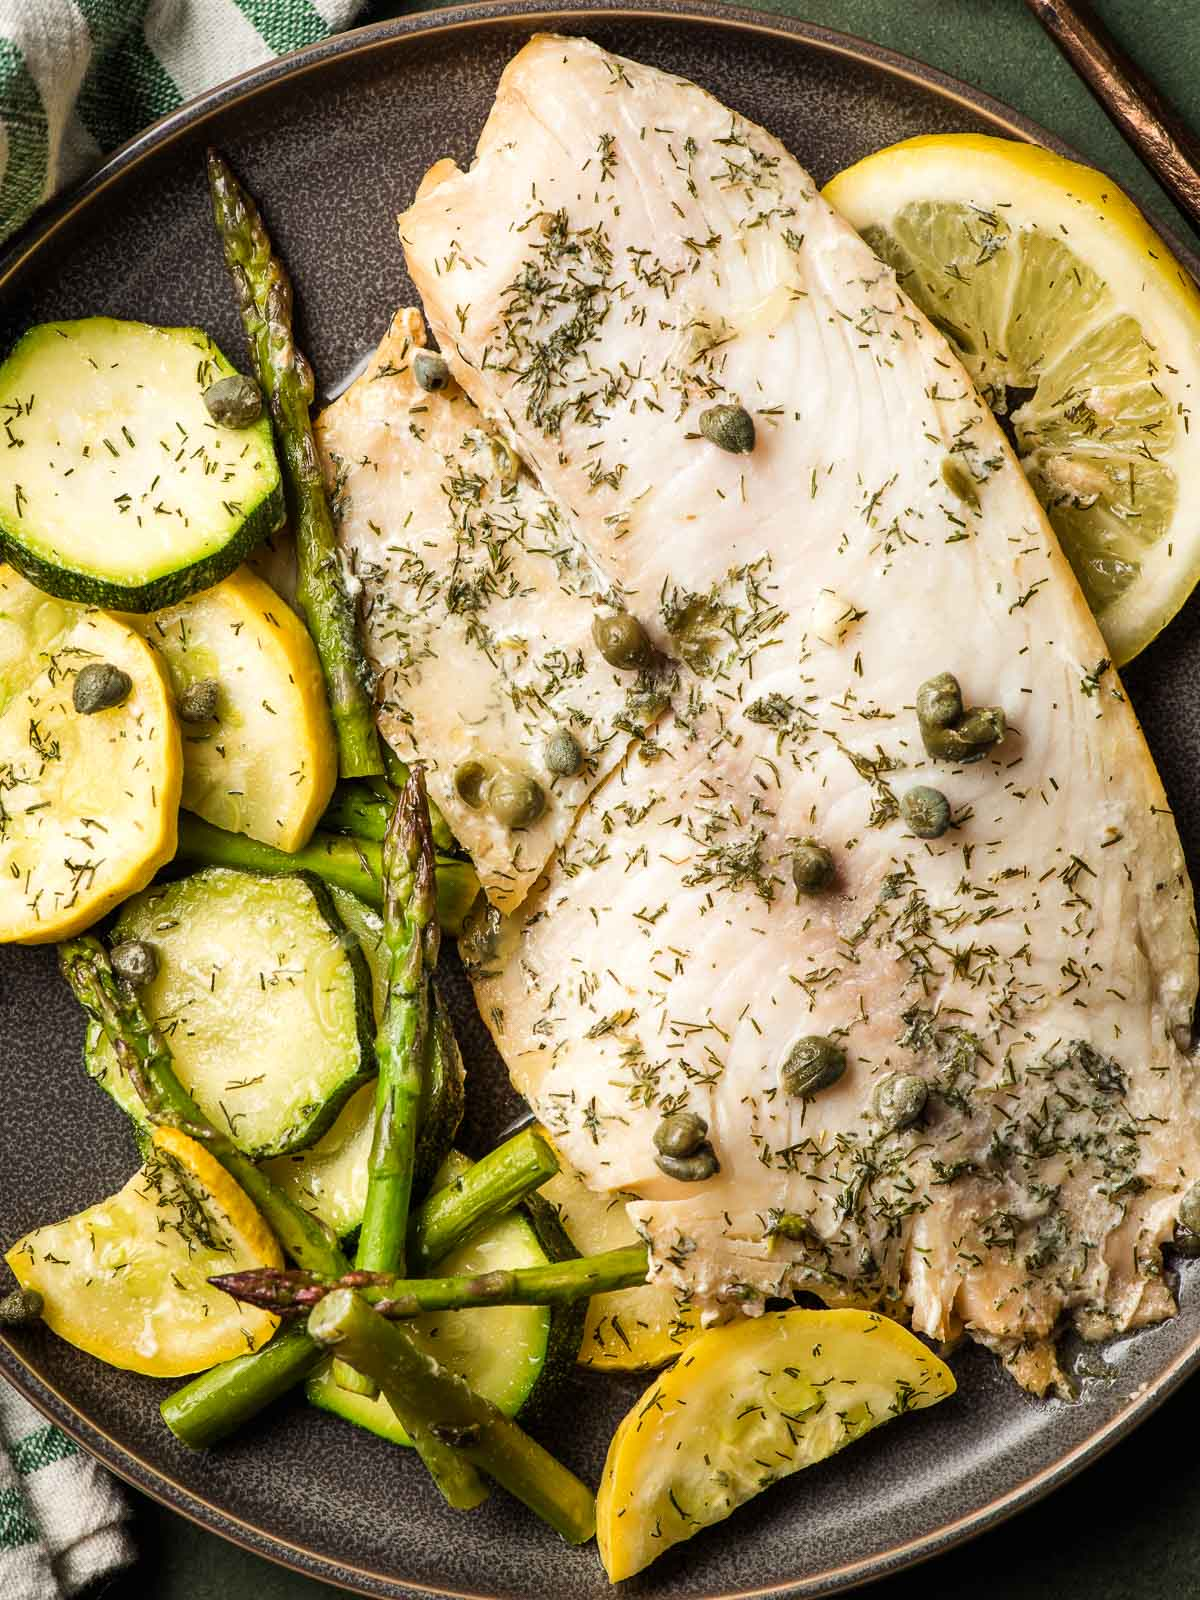 Grilled Tilapia topped with dried dill and capers on a palte with summer vegetables and lemon.